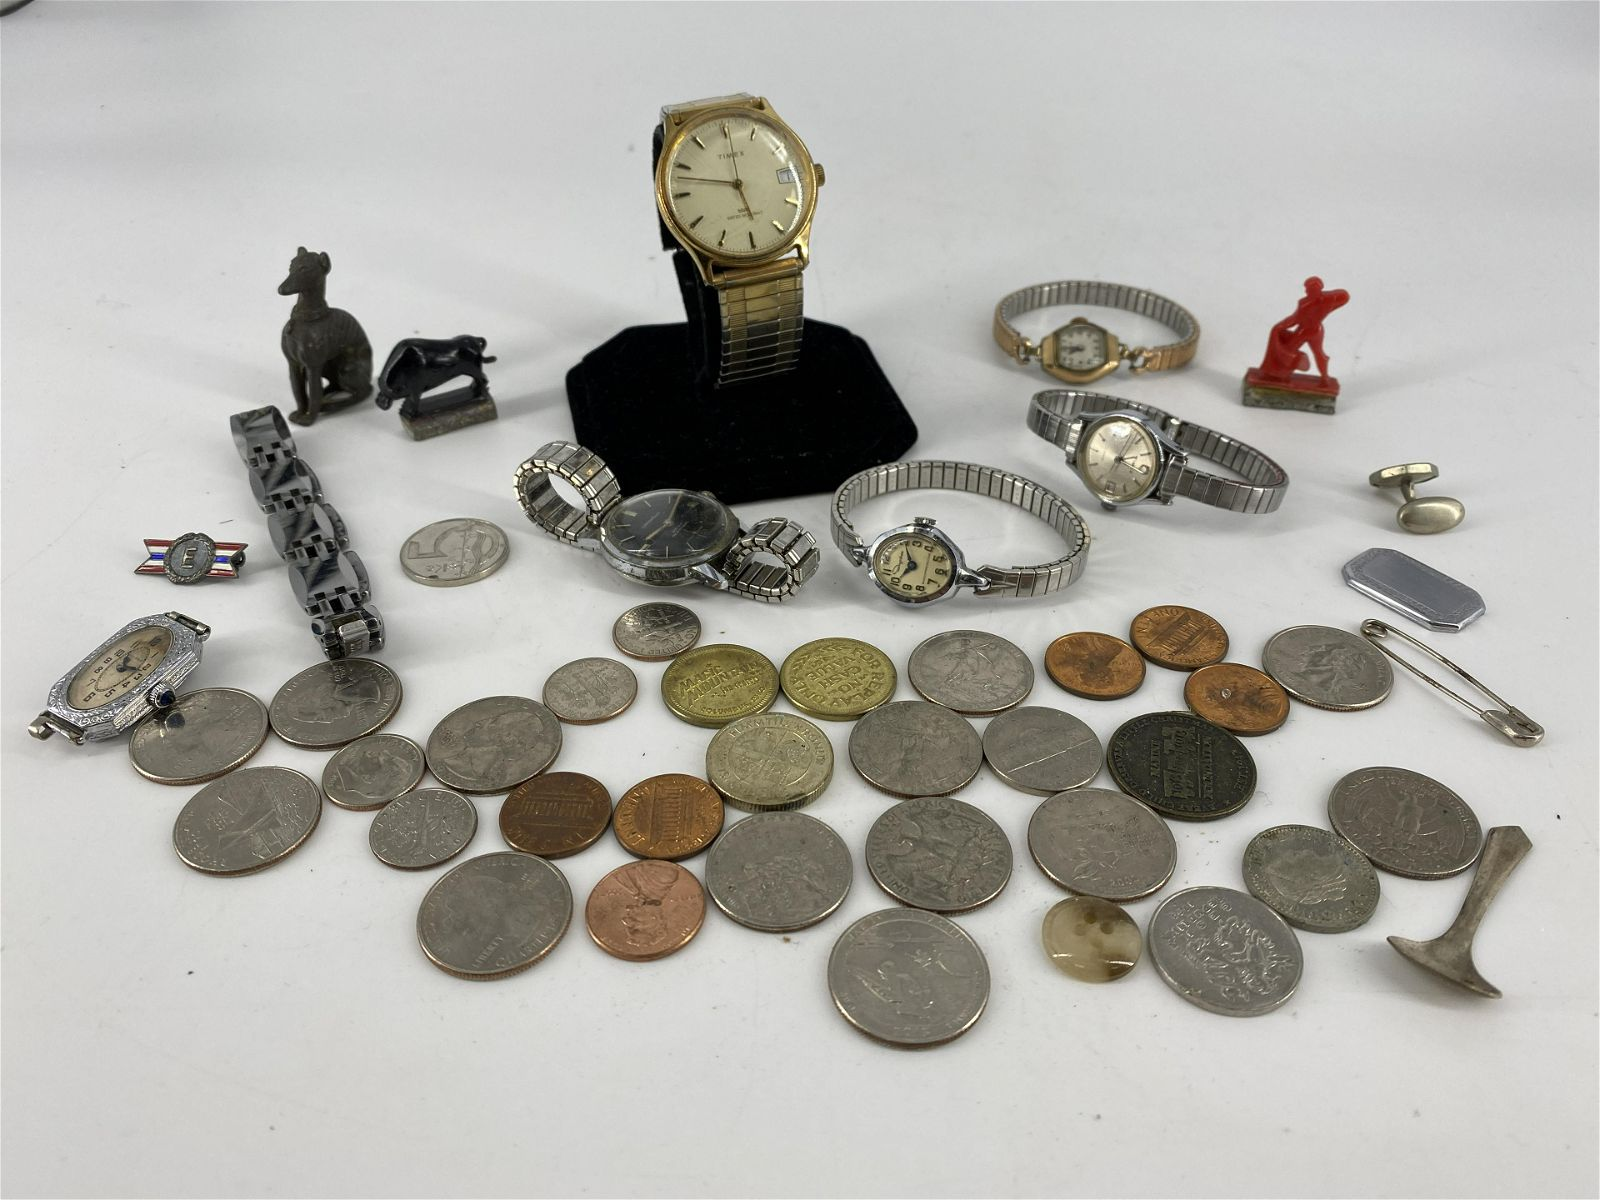 Lot of Wrist Watches, Coins + Miscellaneous Accessories